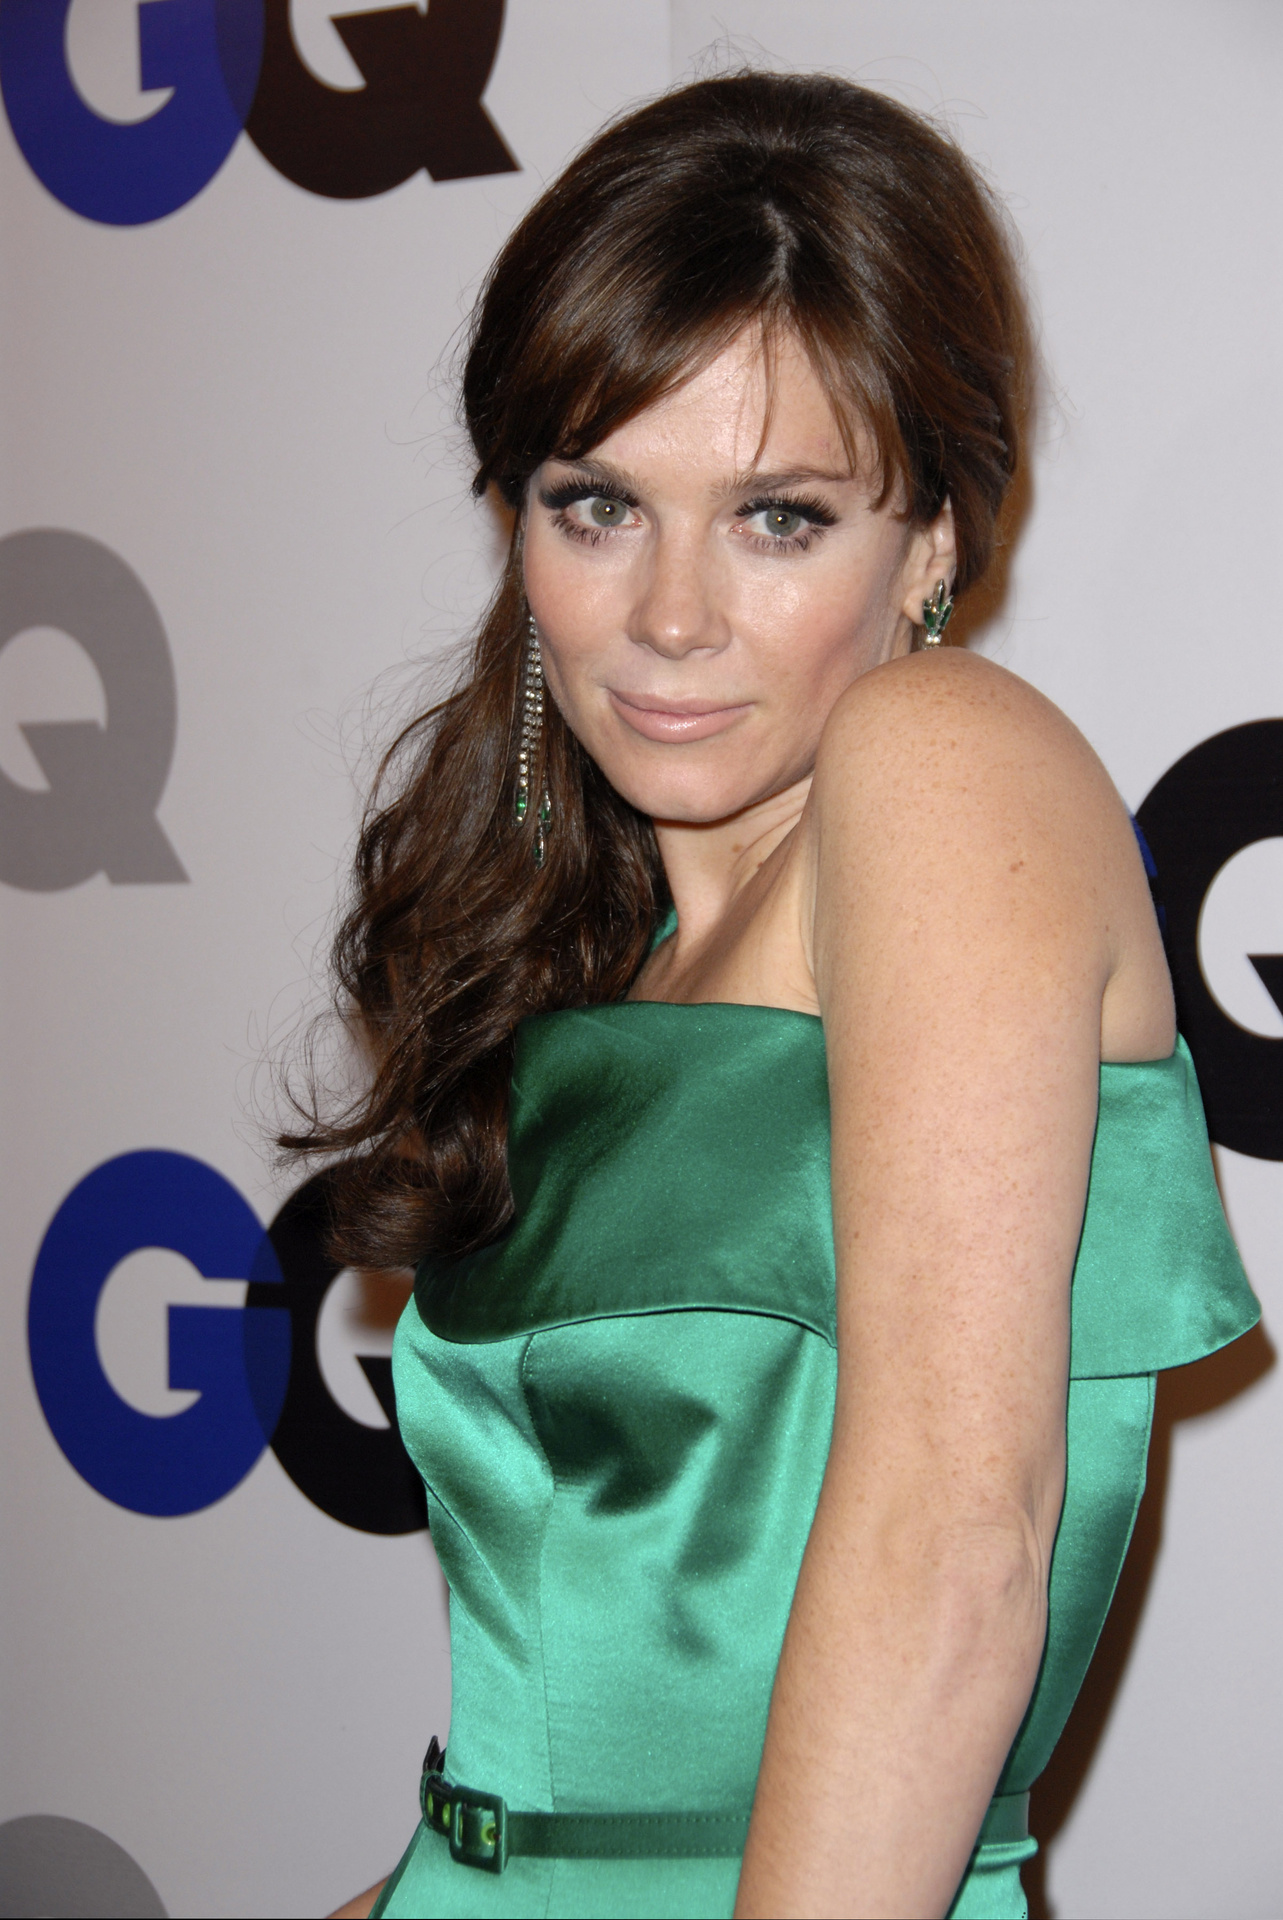 Anna Friel - Images Hot